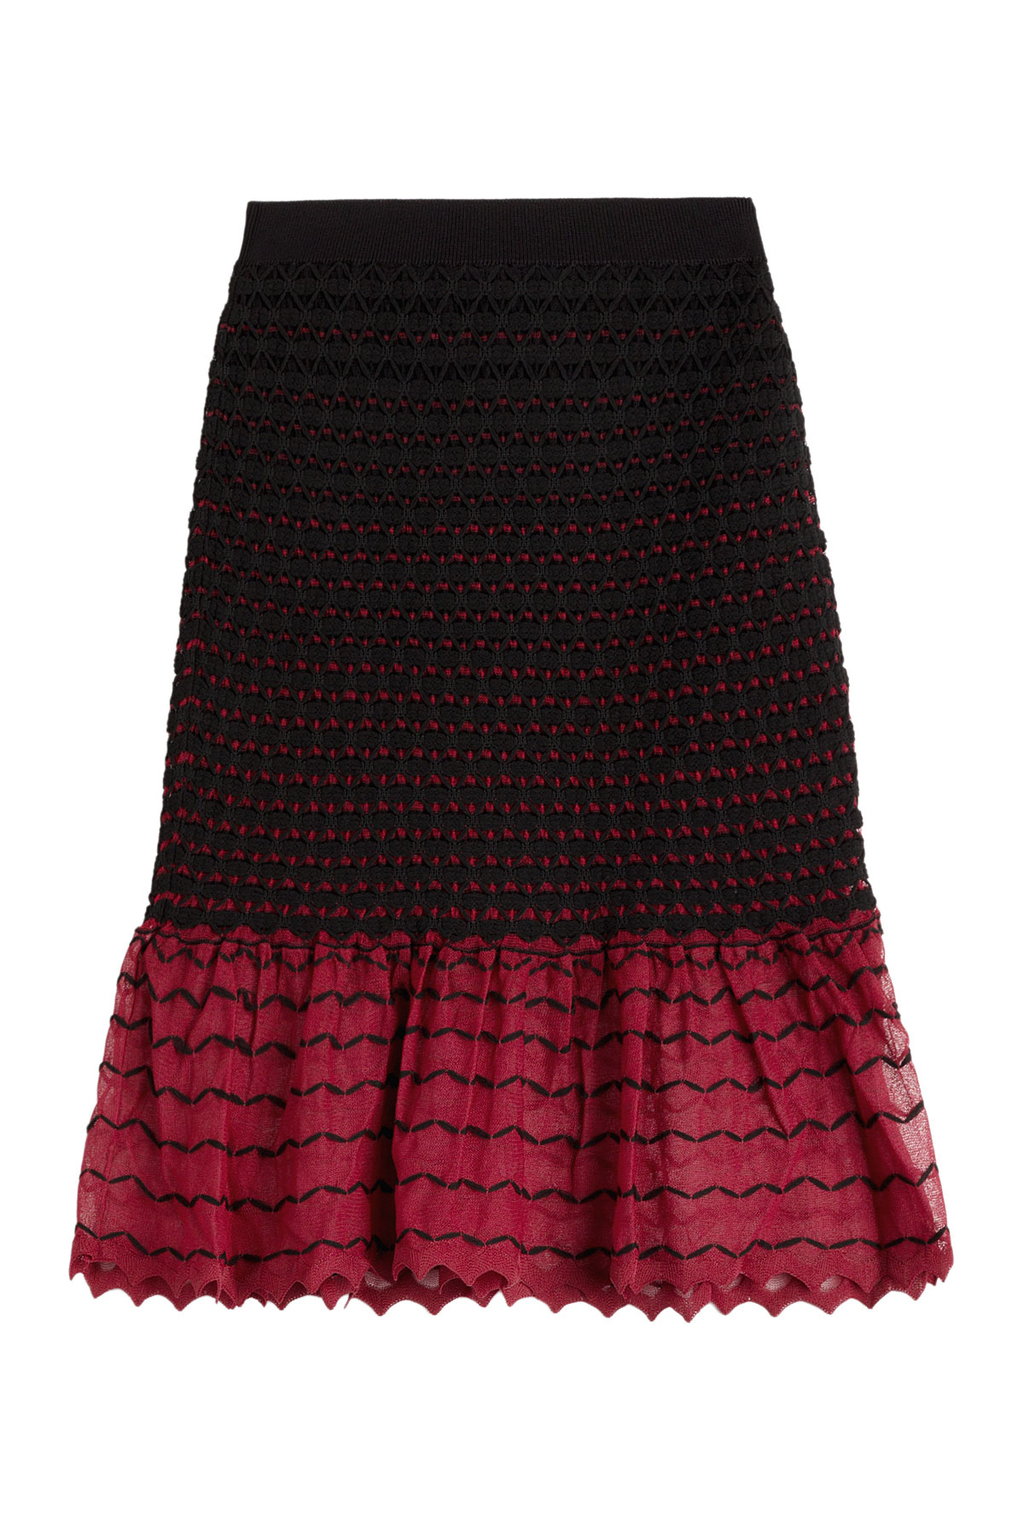 Textured Knit Skirt With Contrast Hem - style: pencil; fit: body skimming; pattern: herringbone/tweed; waist: mid/regular rise; secondary colour: hot pink; predominant colour: black; occasions: evening; length: on the knee; fibres: polyester/polyamide - mix; hip detail: subtle/flattering hip detail; texture group: knits/crochet; pattern type: knitted - other; pattern size: standard (bottom); multicoloured: multicoloured; season: s/s 2016; wardrobe: event